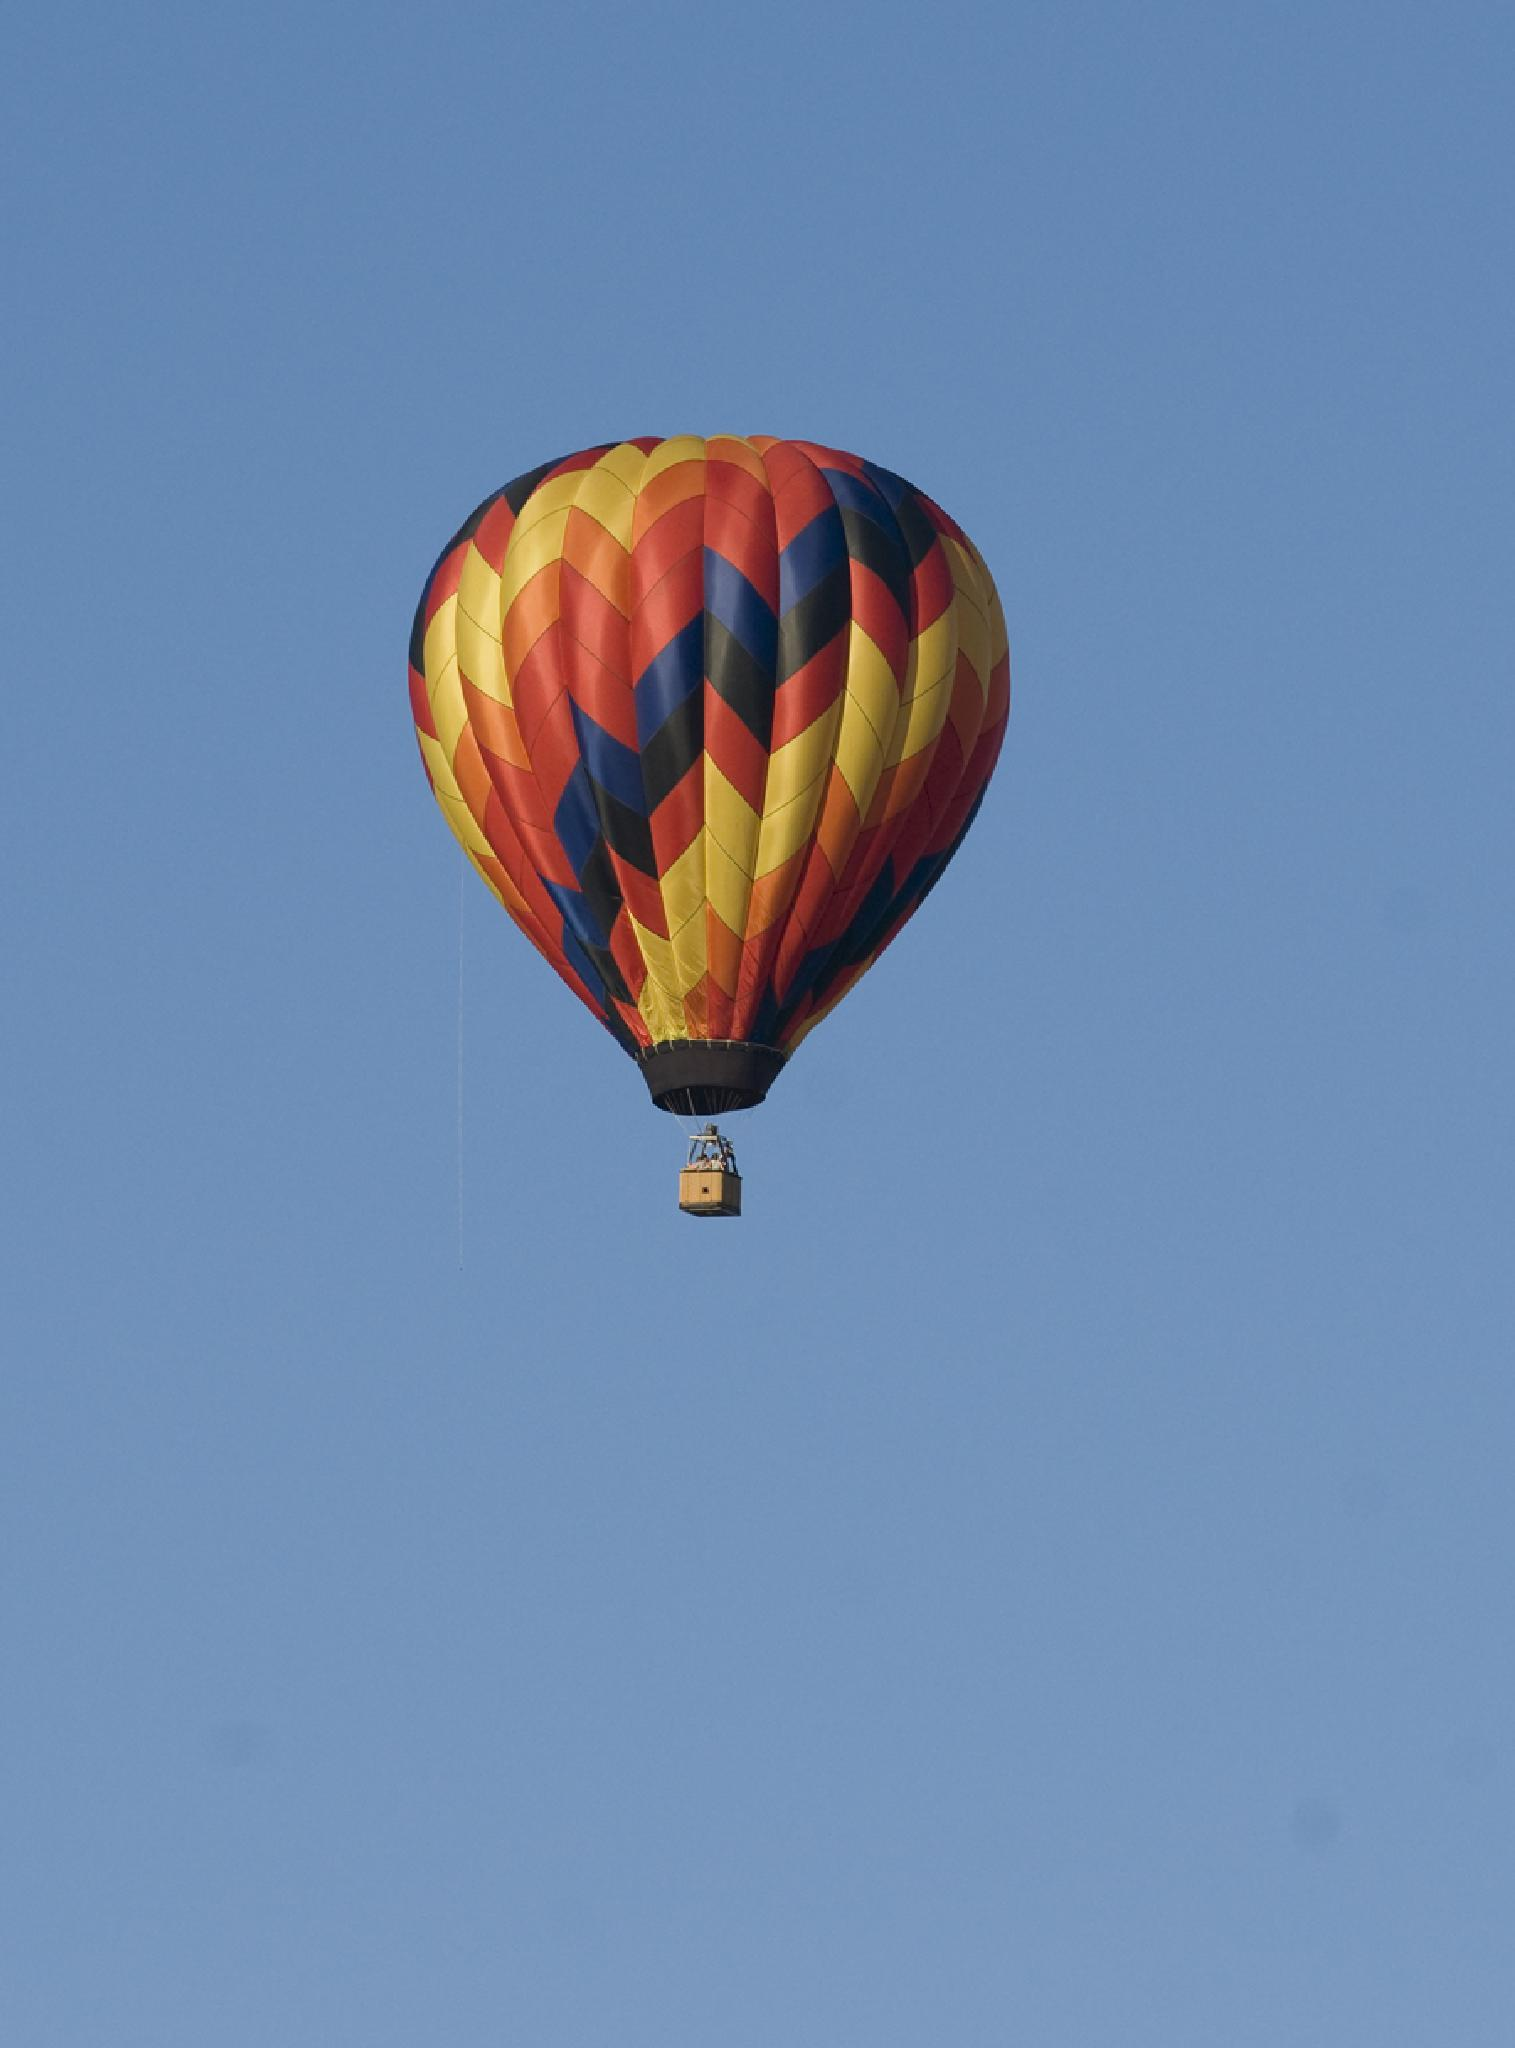 Up up and away by debra.louden1